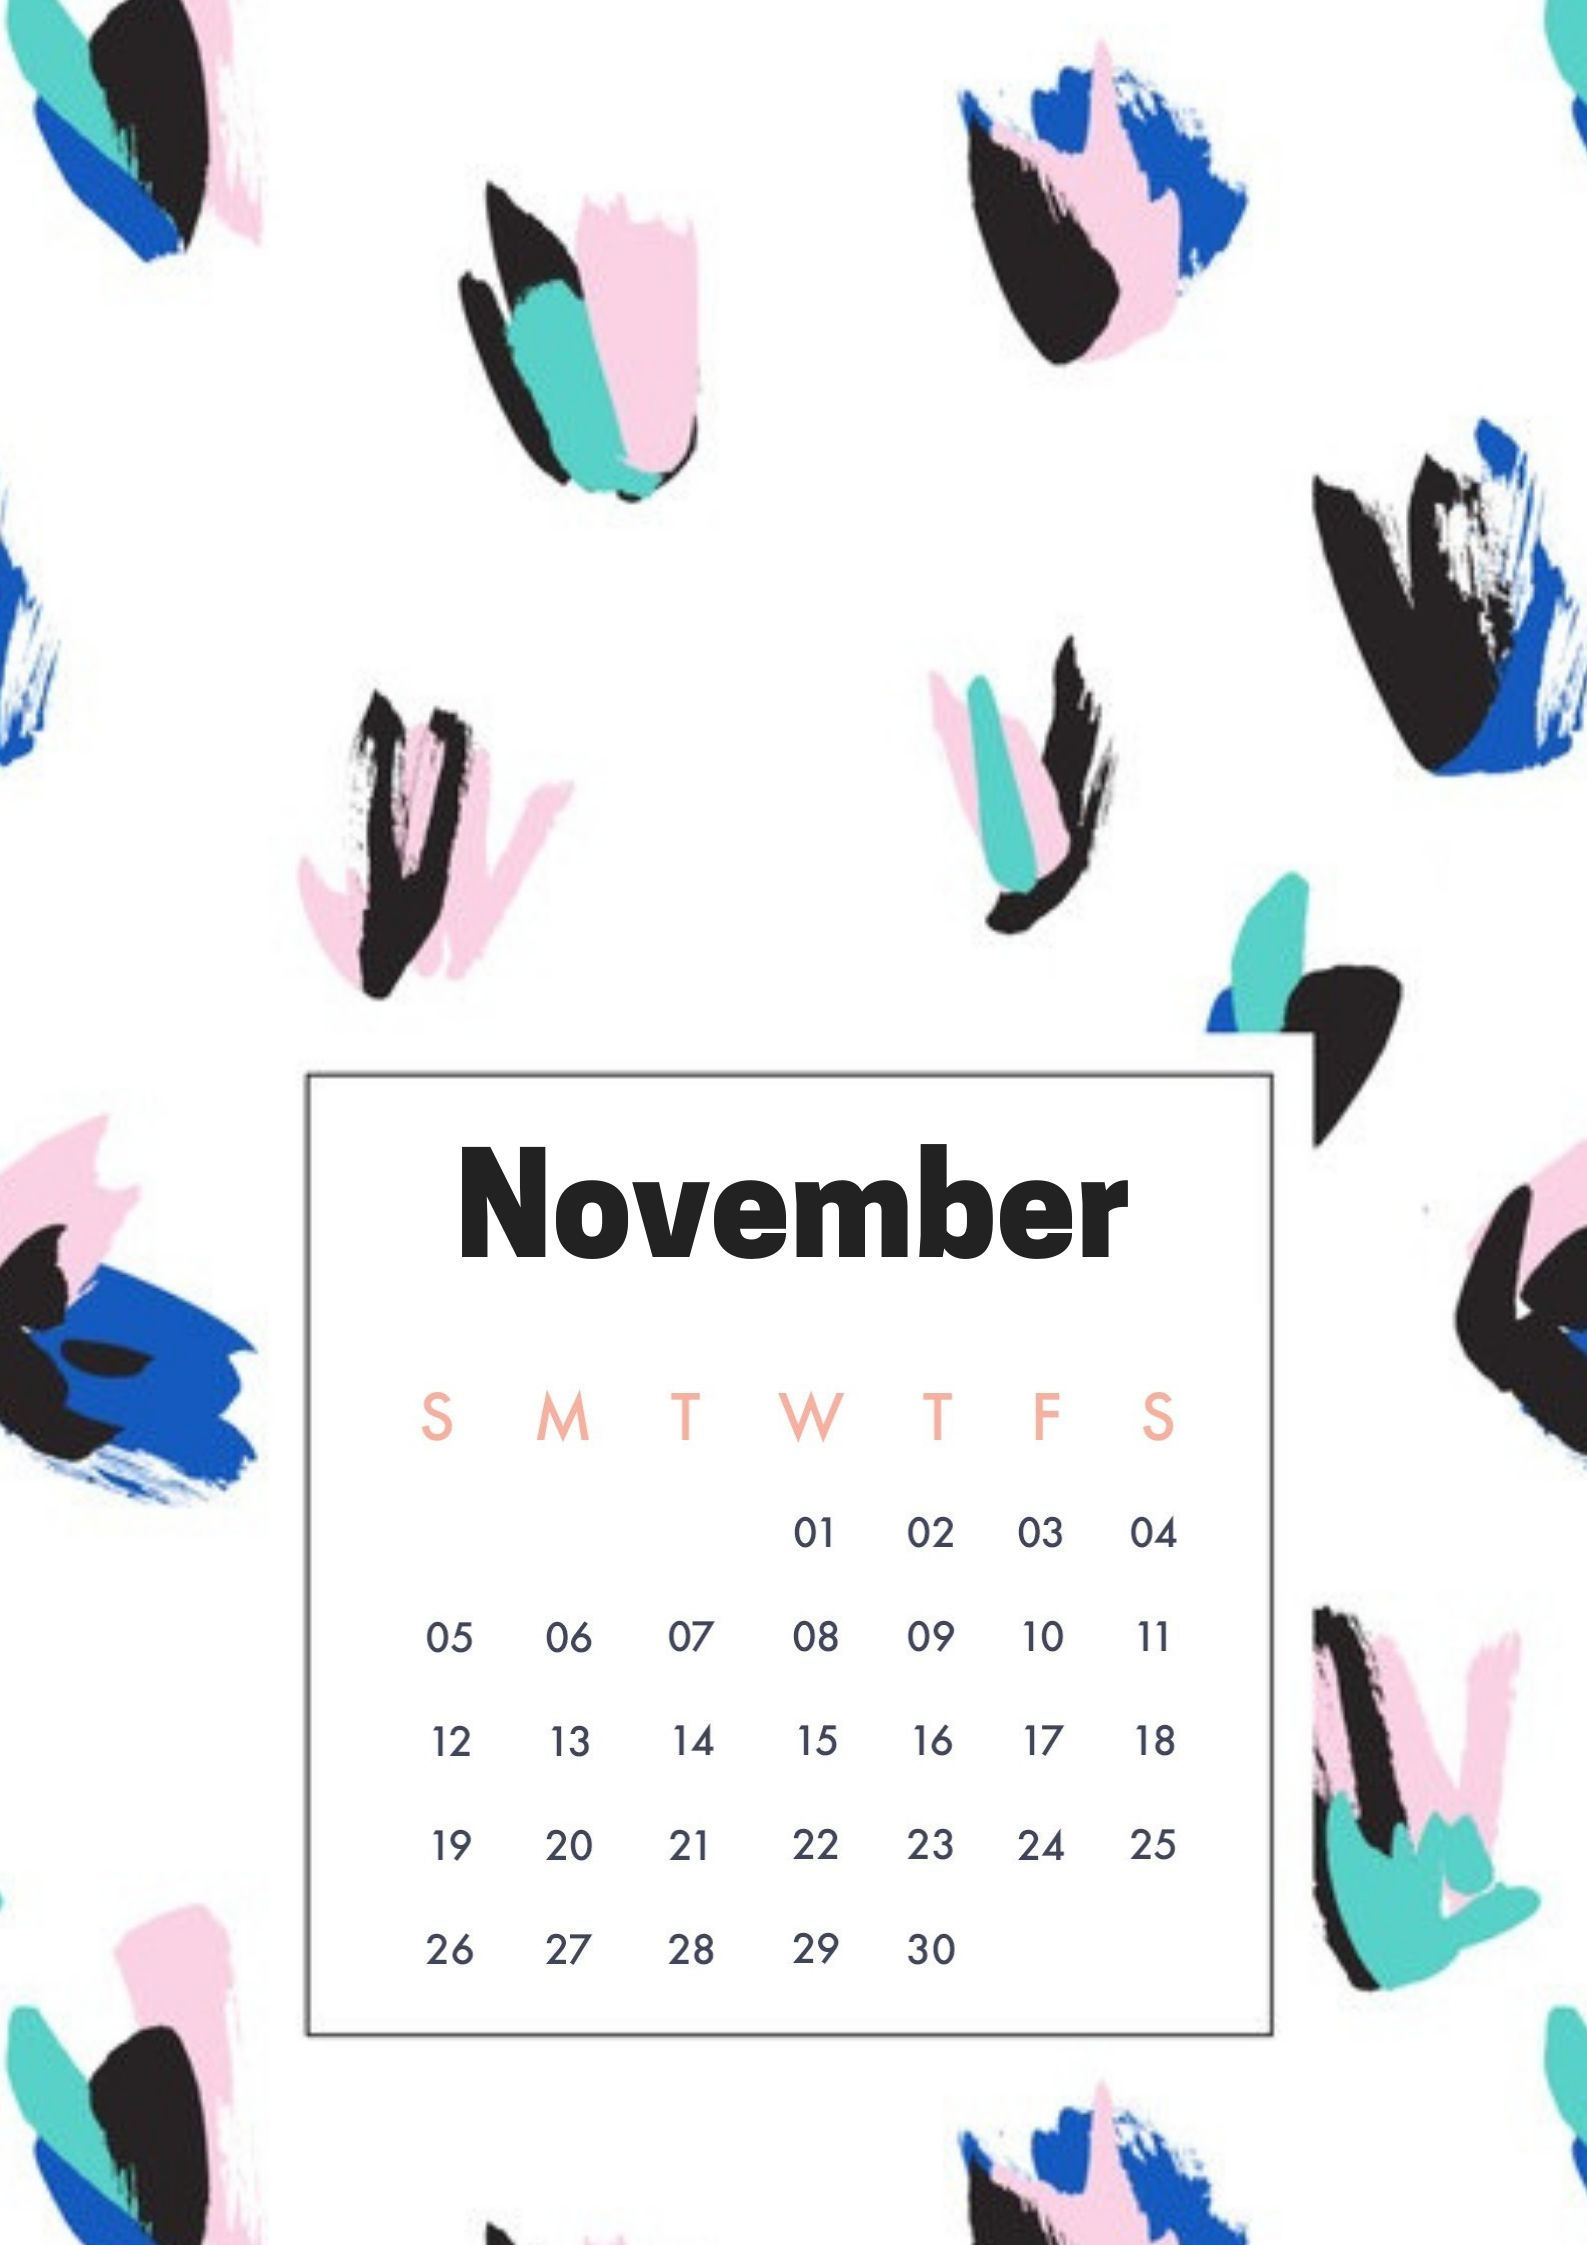 November 2018 Homescreen Calendar